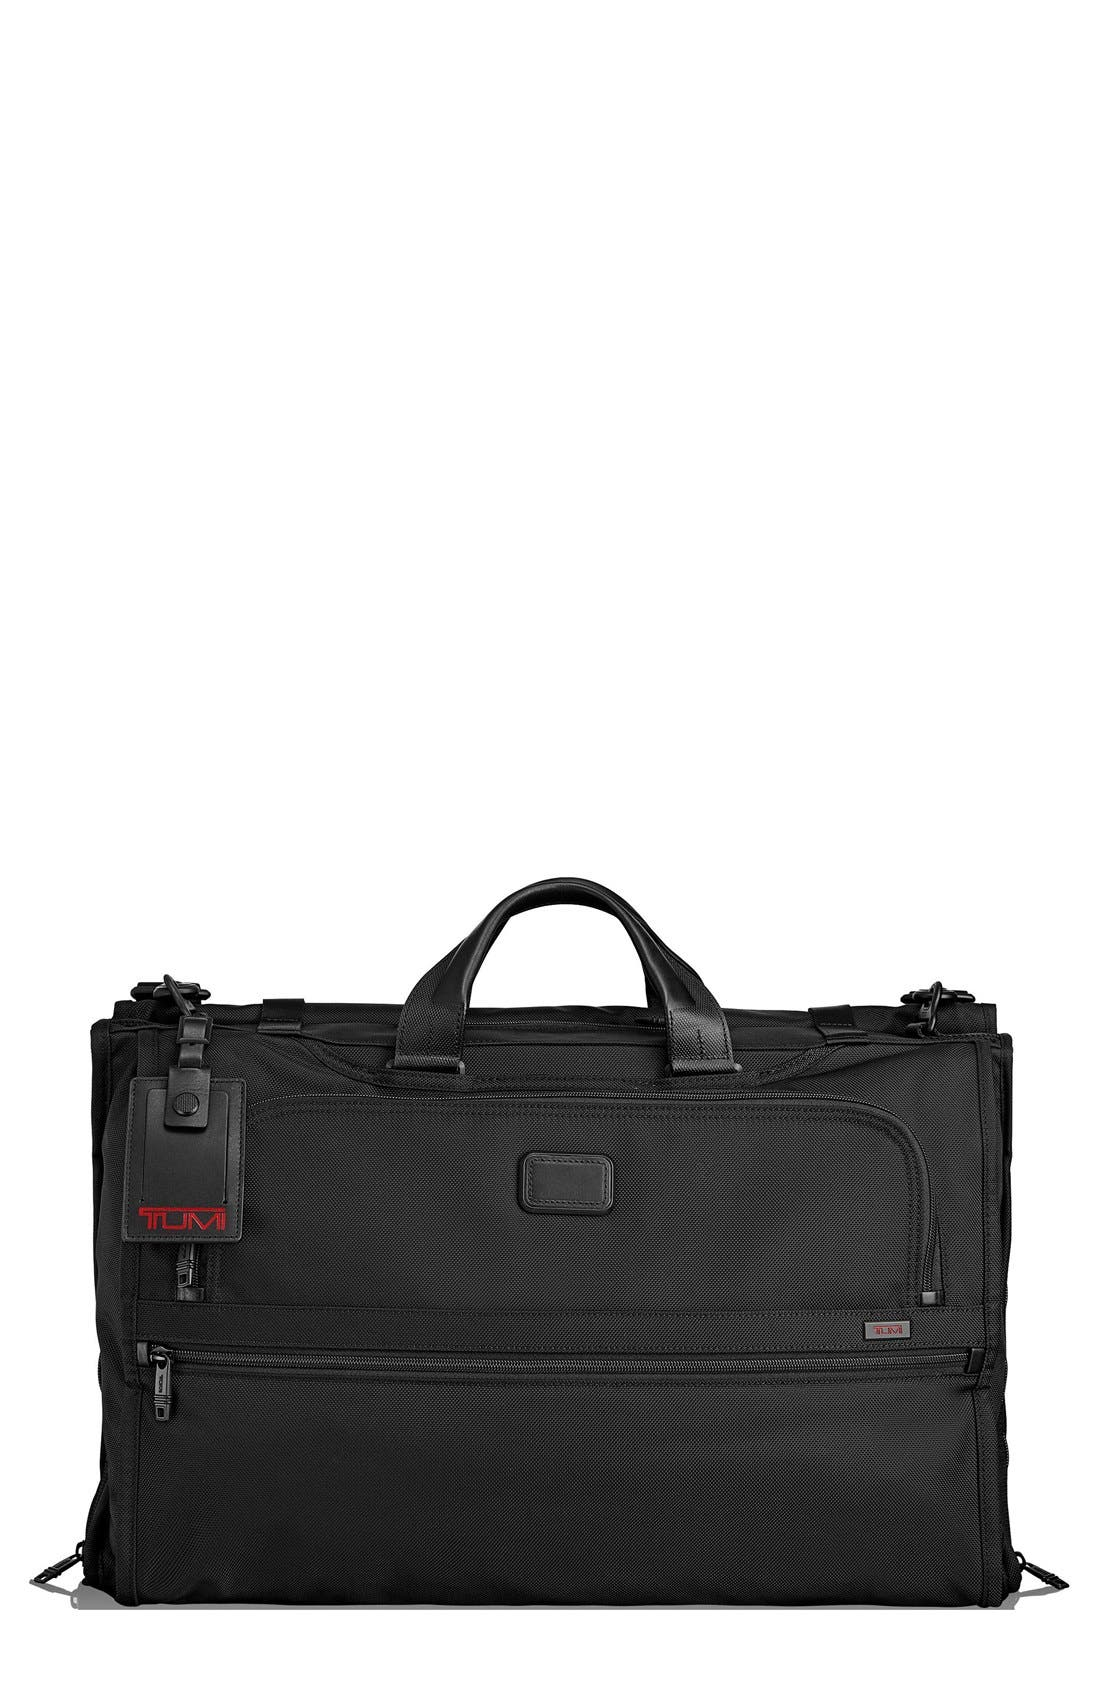 TUMI Alpha 2 Trifold Carry-On Garment Bag